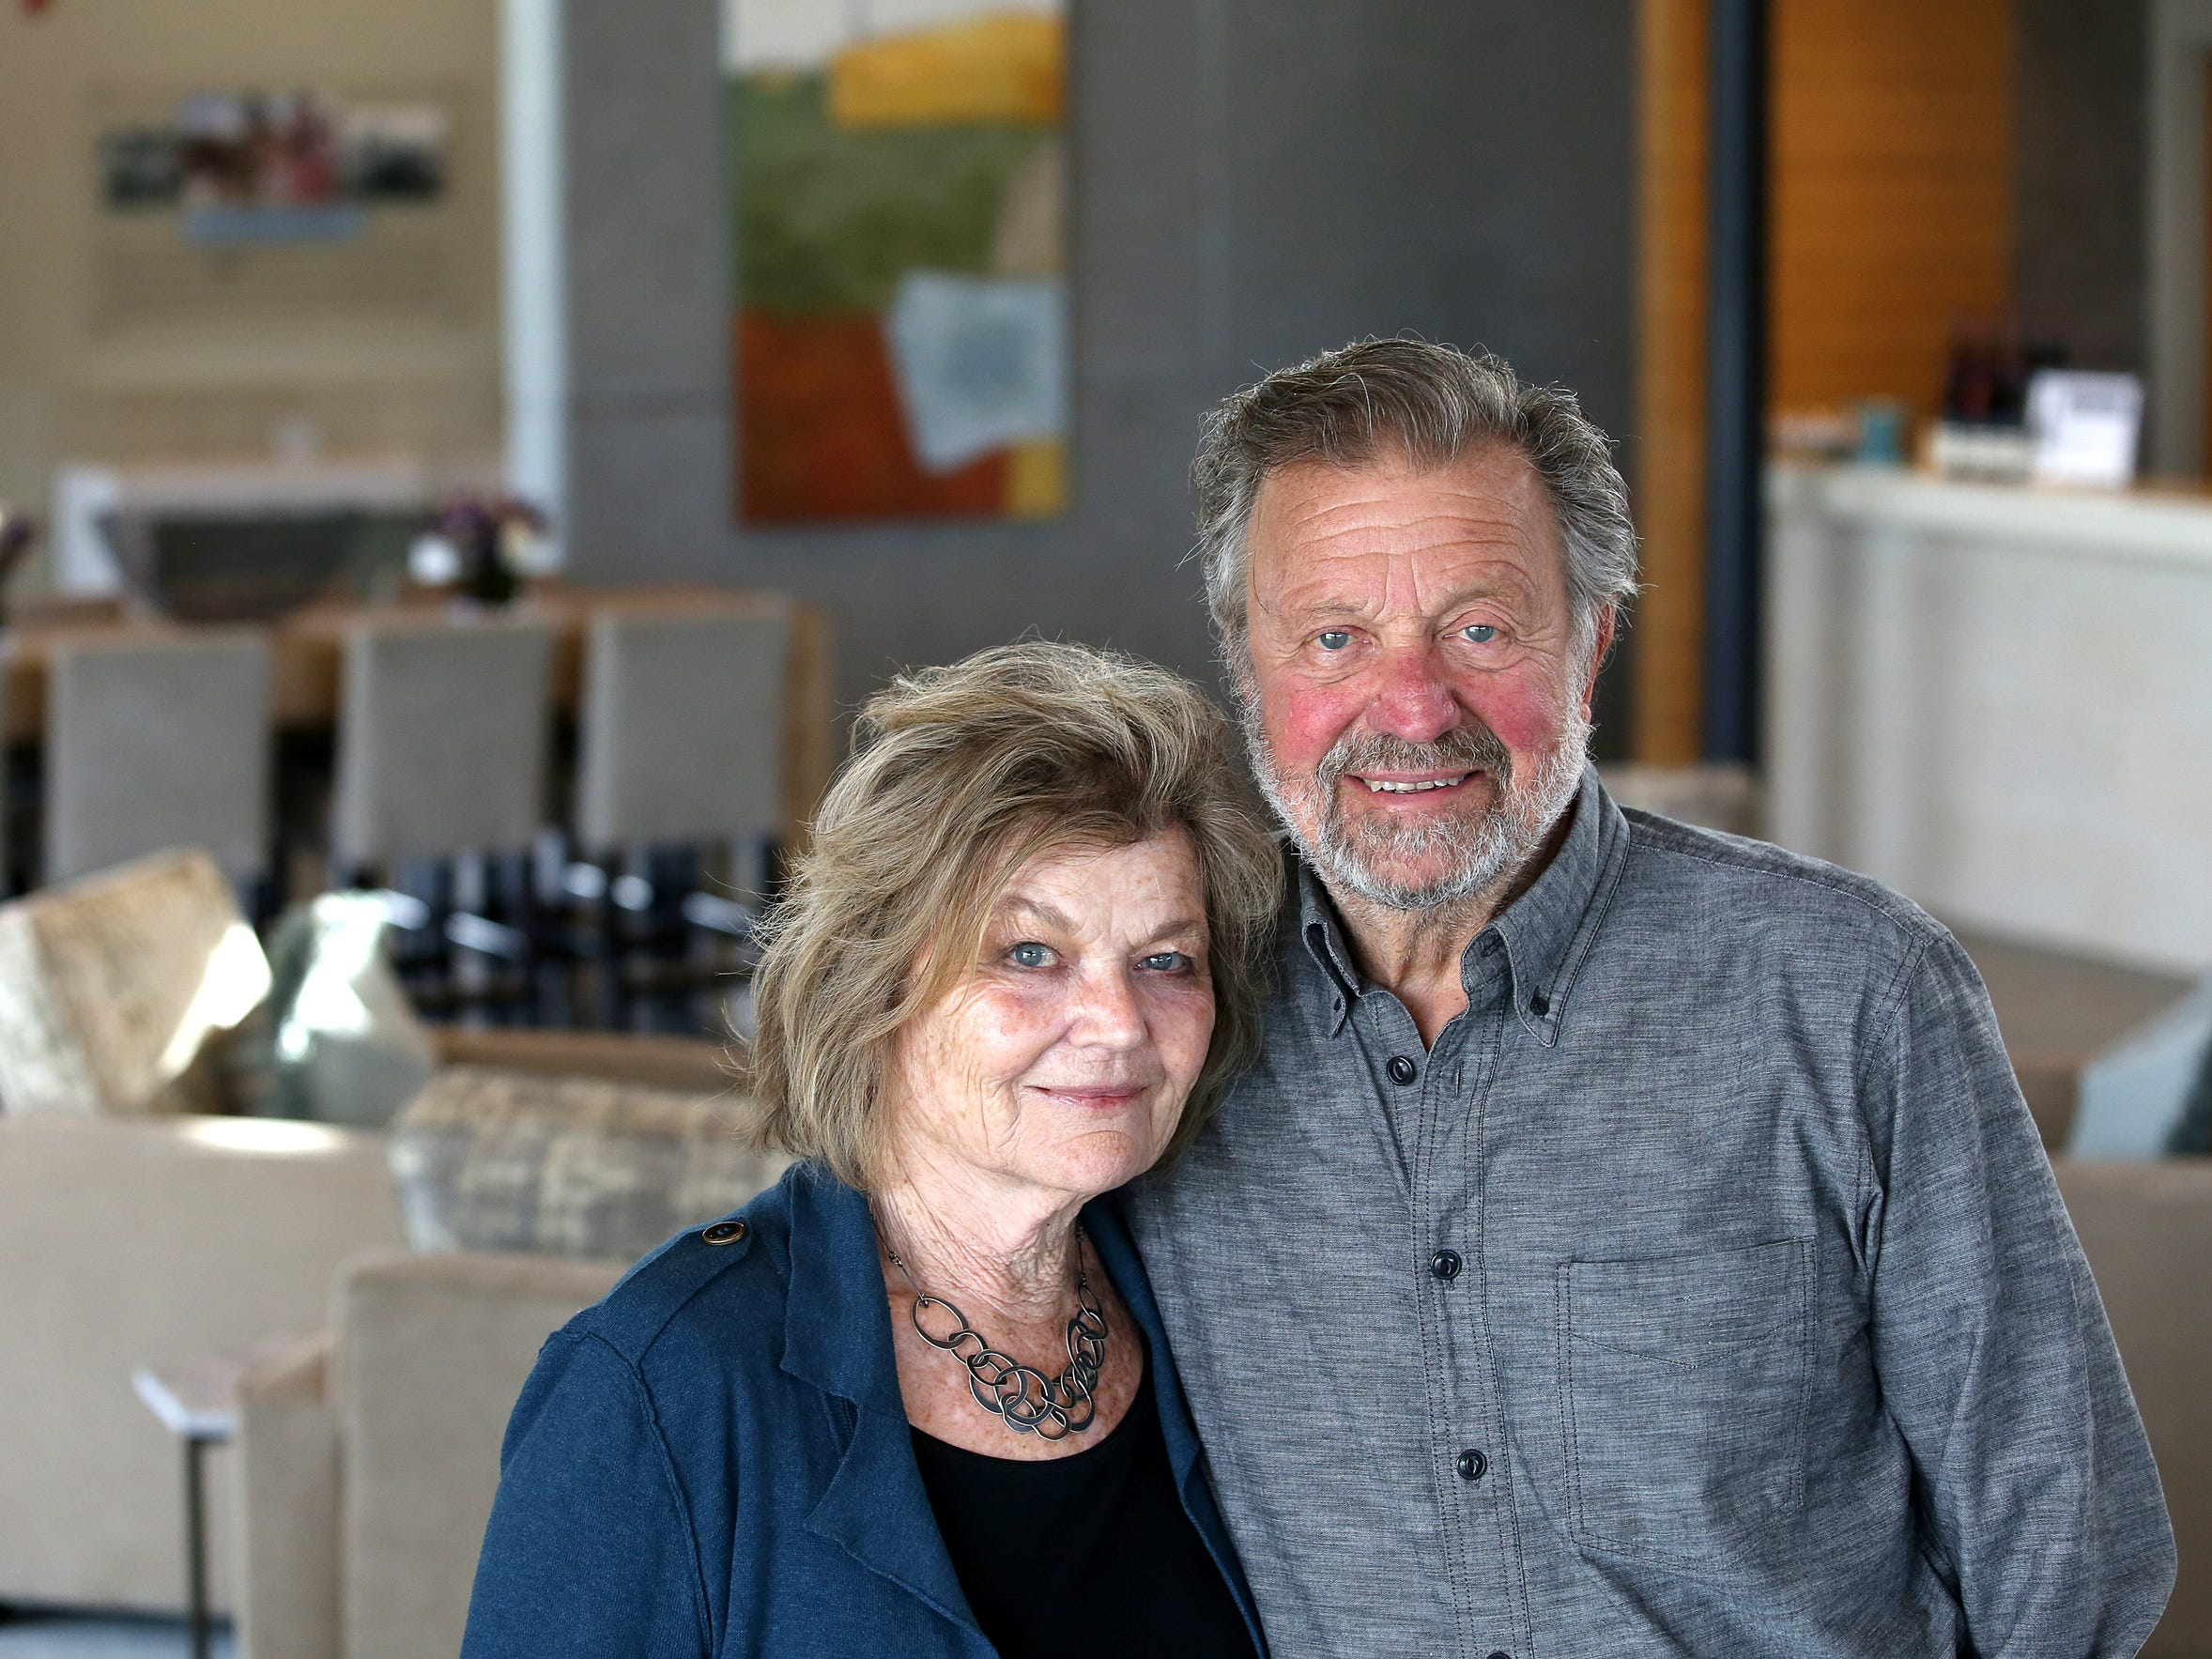 Dick and Nancy Ponzi are pictured Feb. 11, 2015, at